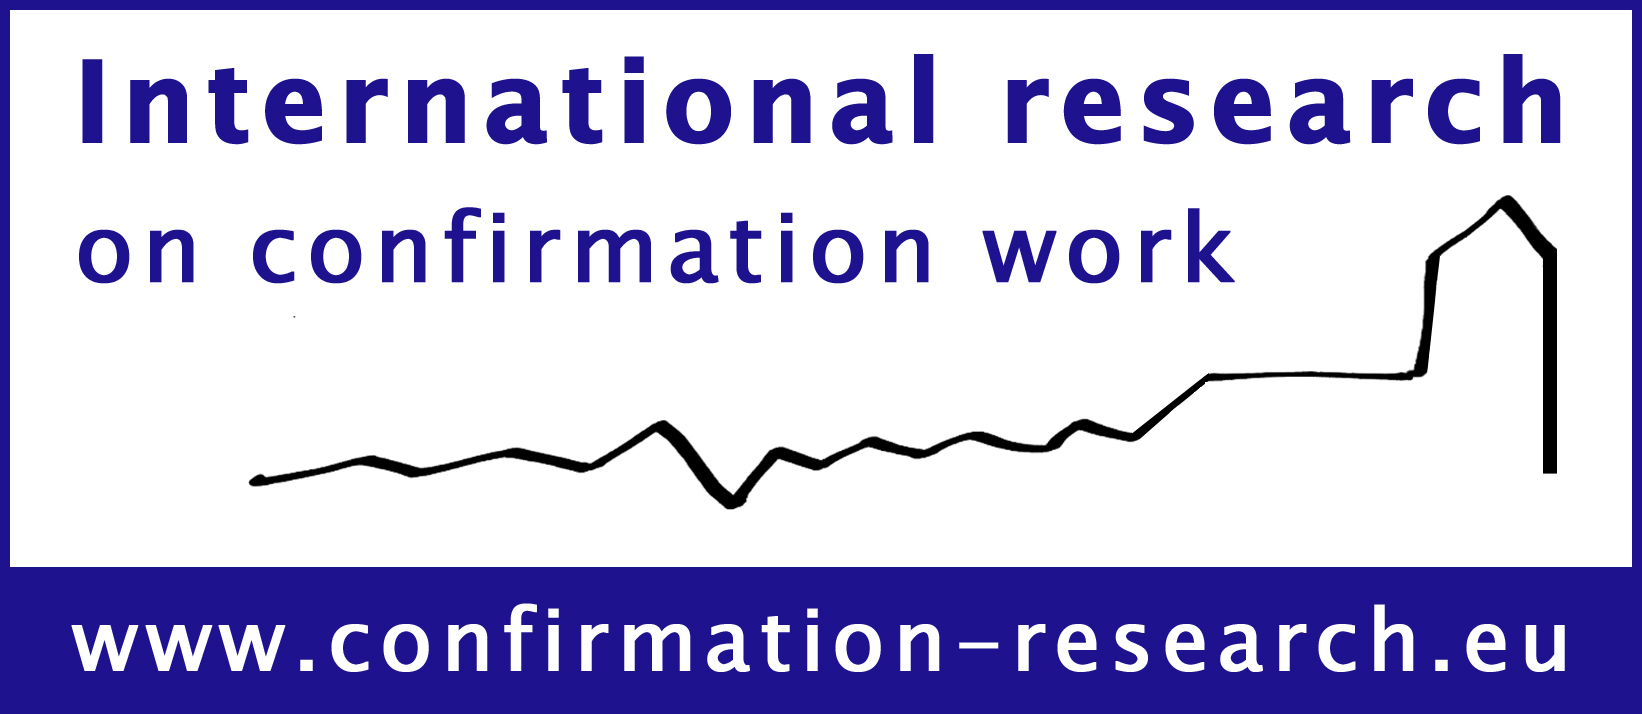 International research on confirmation work